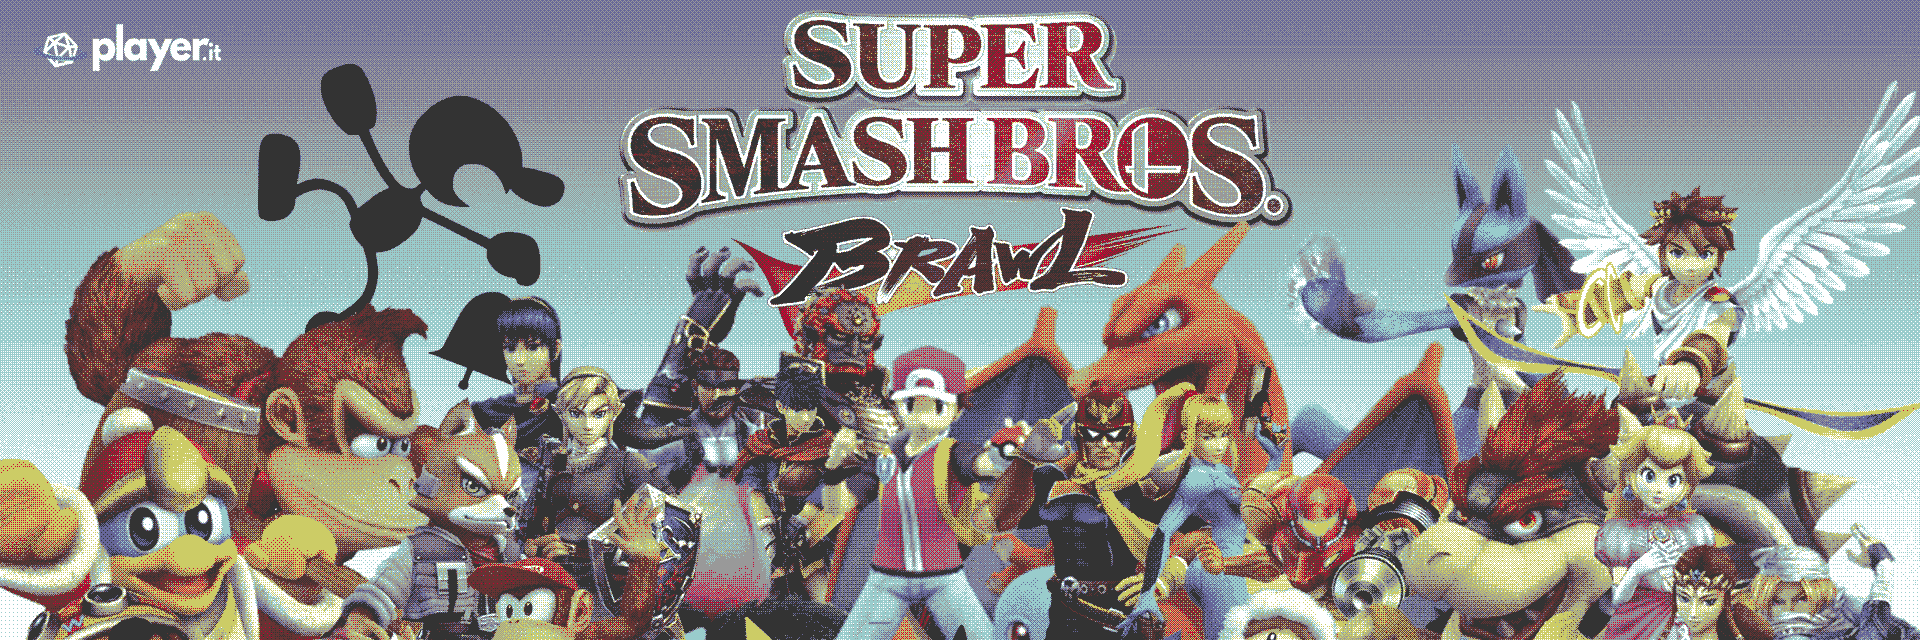 Super Smash Bros. Brawl artwork wallpaper scheda gioco